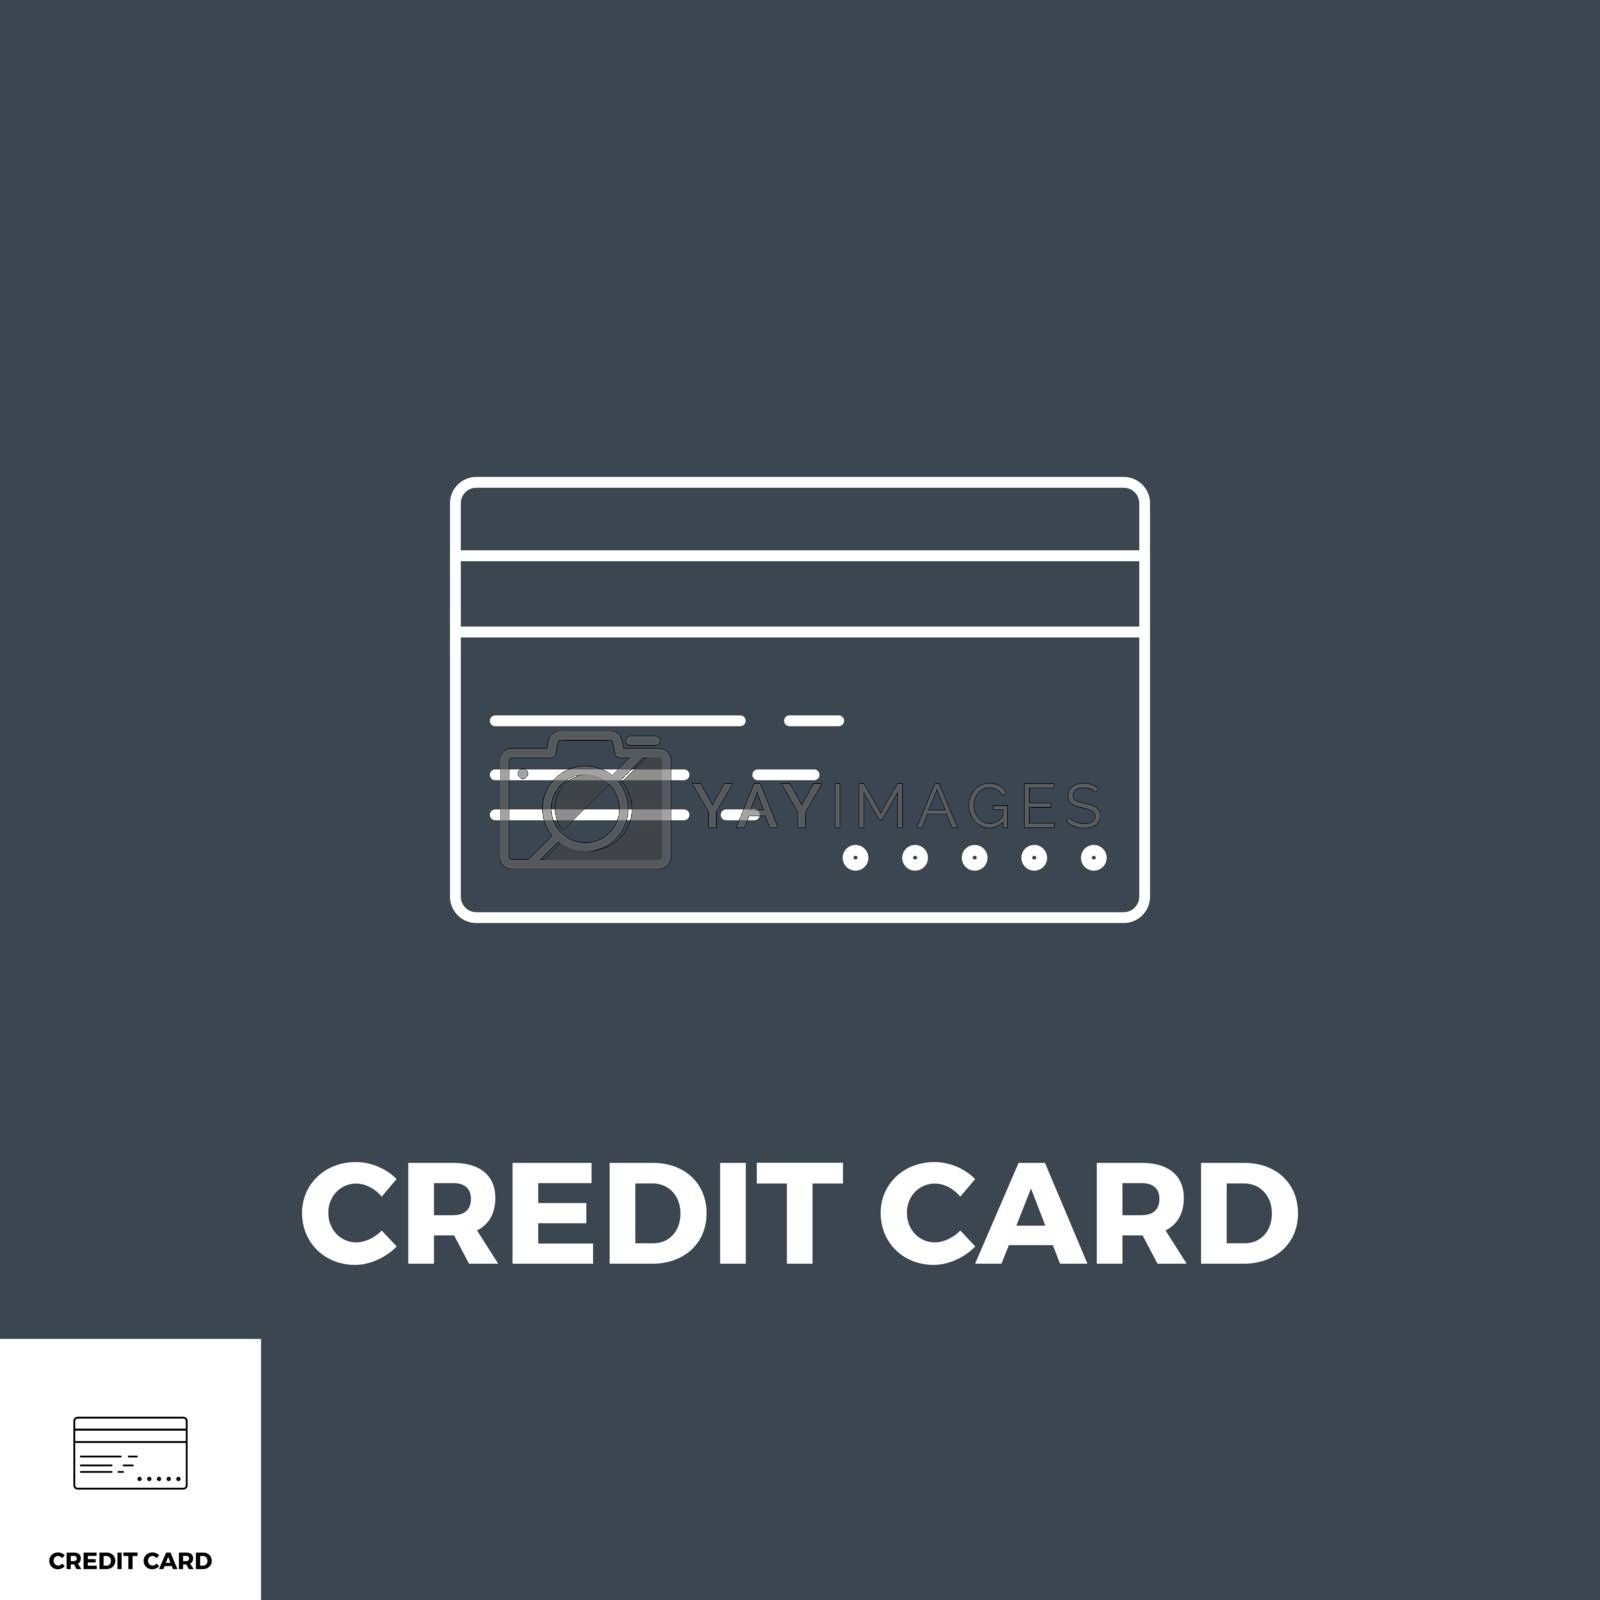 Credit card related vector thin line icon. Isolated on black background. Vector illustration.